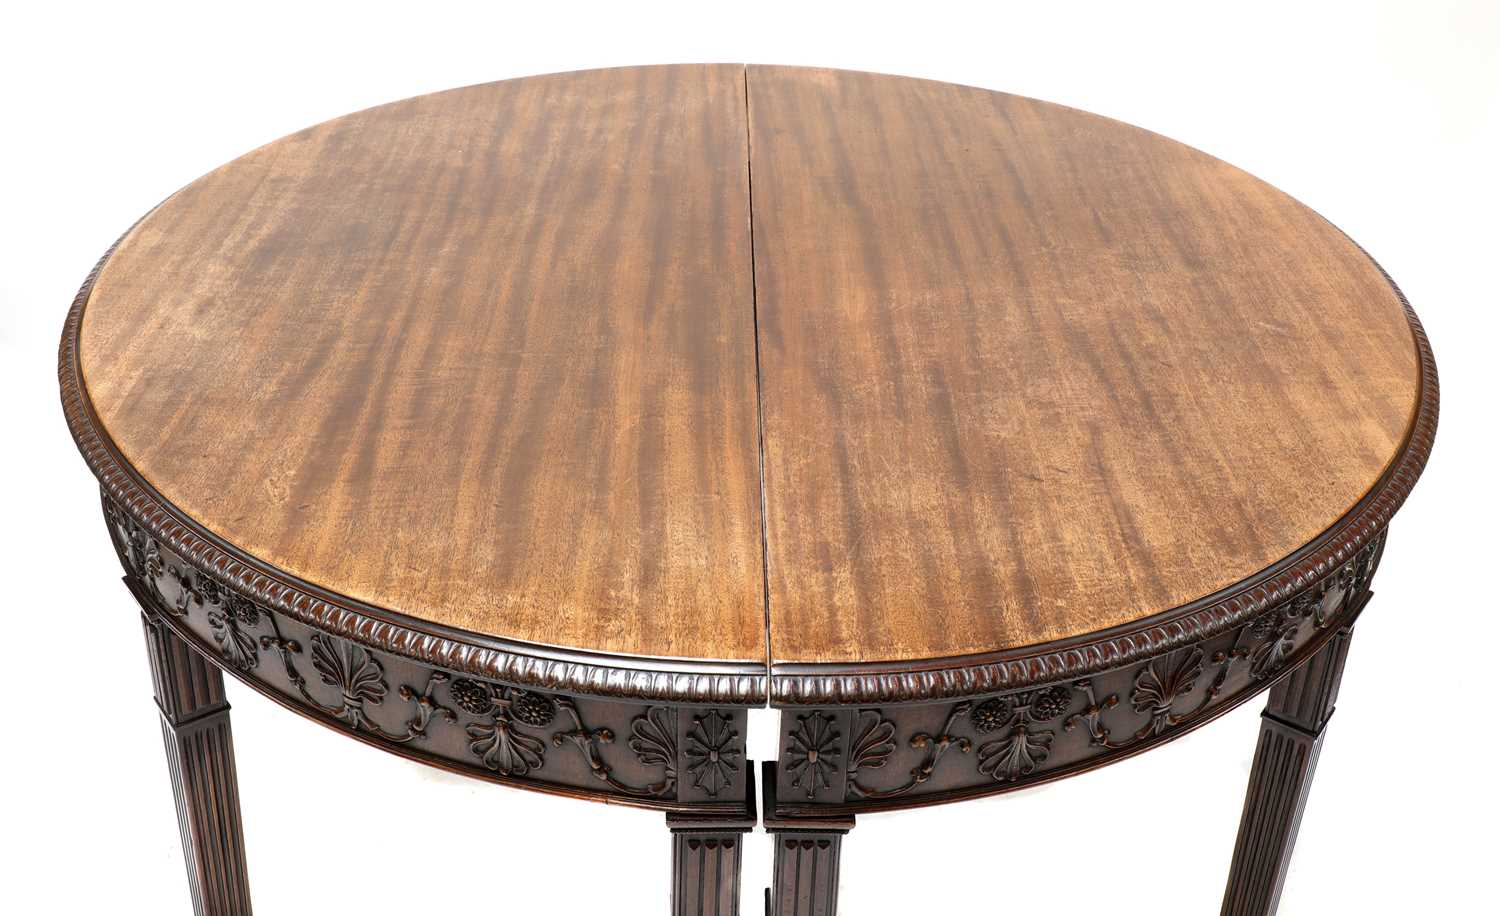 A pair of Adam Revival mahogany demilune console tables, - Image 2 of 4